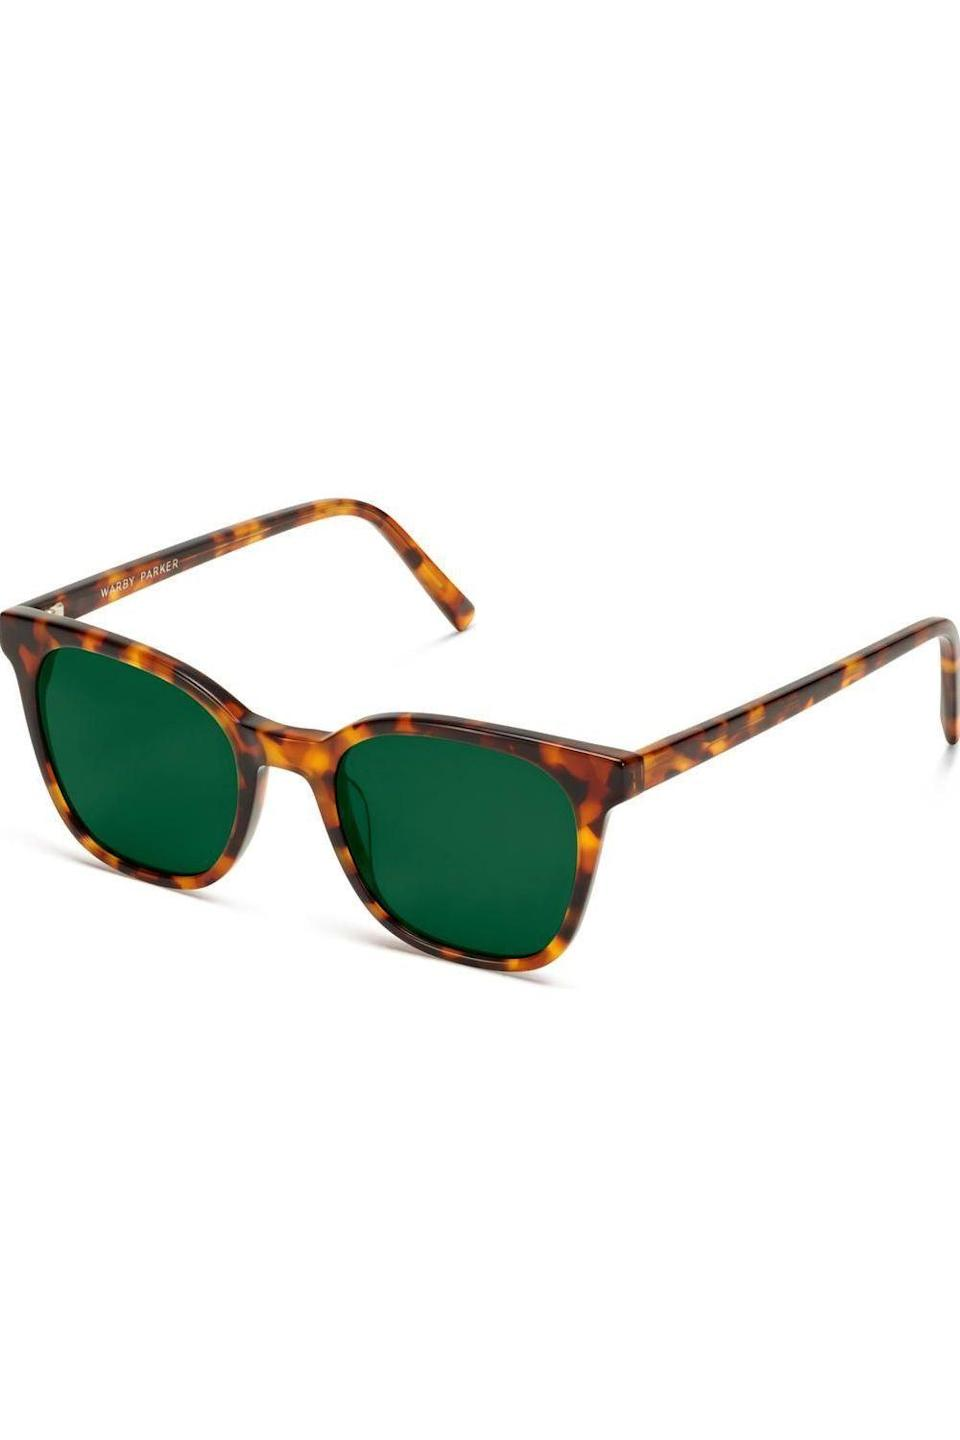 """<p><strong>Warby Parker</strong></p><p>warbyparker.com</p><p><strong>$95.00</strong></p><p><a href=""""https://go.redirectingat.com?id=74968X1596630&url=https%3A%2F%2Fwww.warbyparker.com%2Fsunglasses%2Fwomen%2Fgriffin%2Facorn-tortoise&sref=https%3A%2F%2Fwww.redbookmag.com%2Flife%2Fg34770397%2Fgifts-that-give-bac1%2F"""" rel=""""nofollow noopener"""" target=""""_blank"""" data-ylk=""""slk:SHOP NOW"""" class=""""link rapid-noclick-resp"""">SHOP NOW</a></p><p>Encourage some shadiness with these classic square frames in goes-with-everything tortoiseshell. For every pair purchased, Warby Parker distributes a pair to someone in need. </p>"""